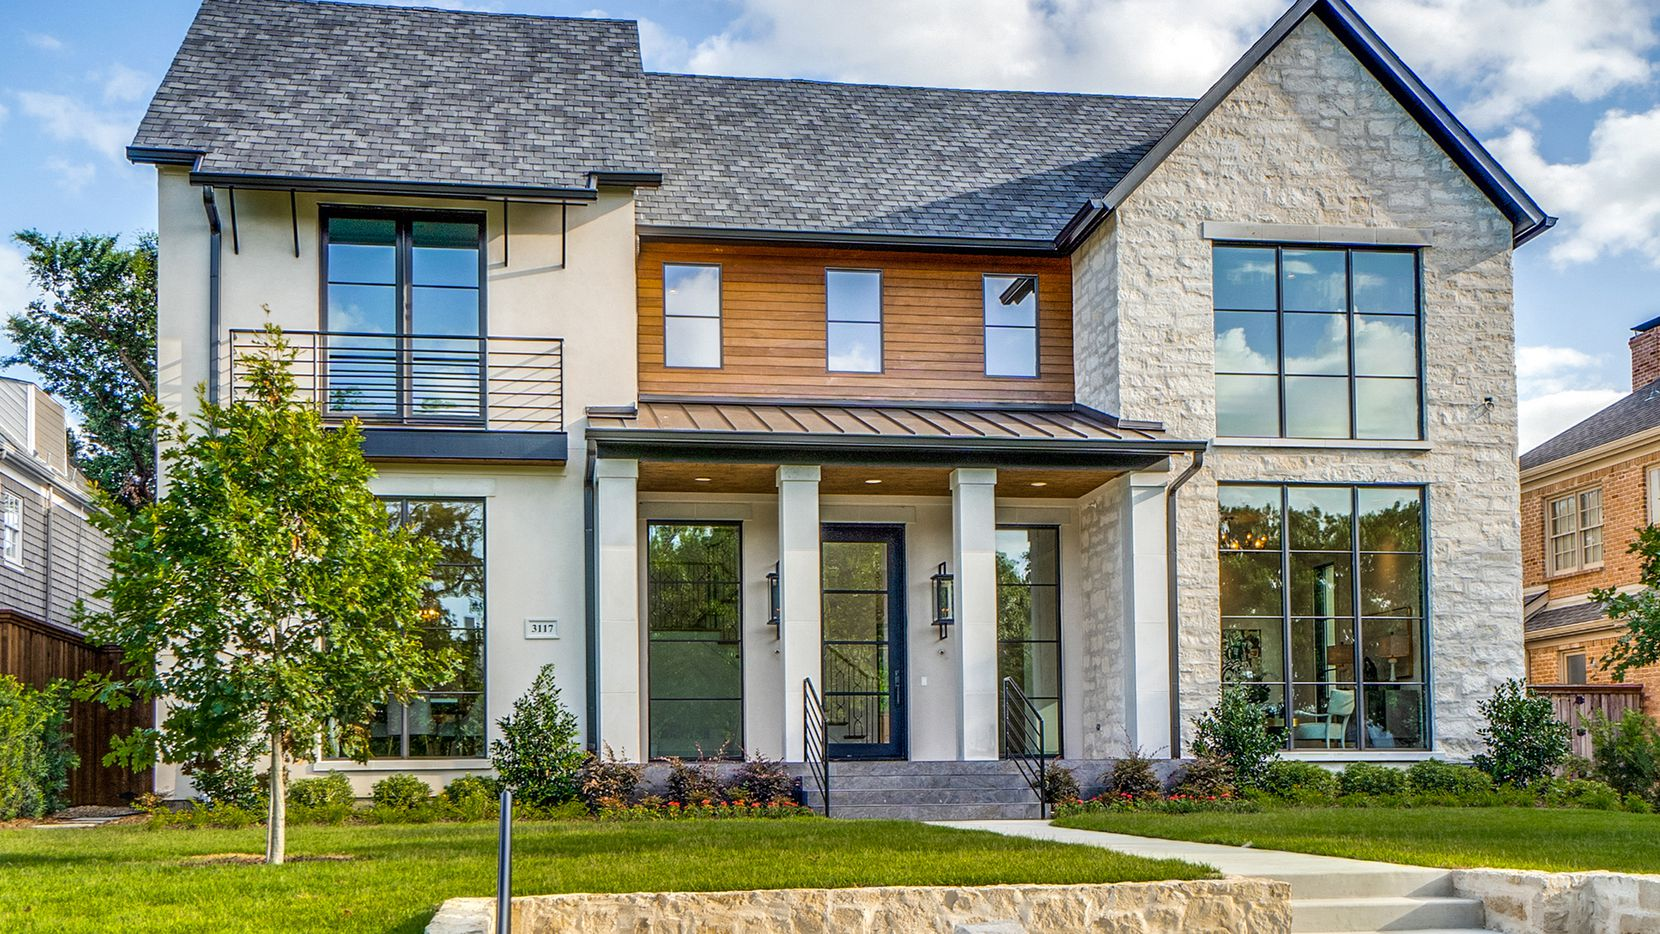 The newly constructed five-bedroom residence at 3117 Caruth Blvd. in University Park was built by Lyle Turner of MALT Homes.